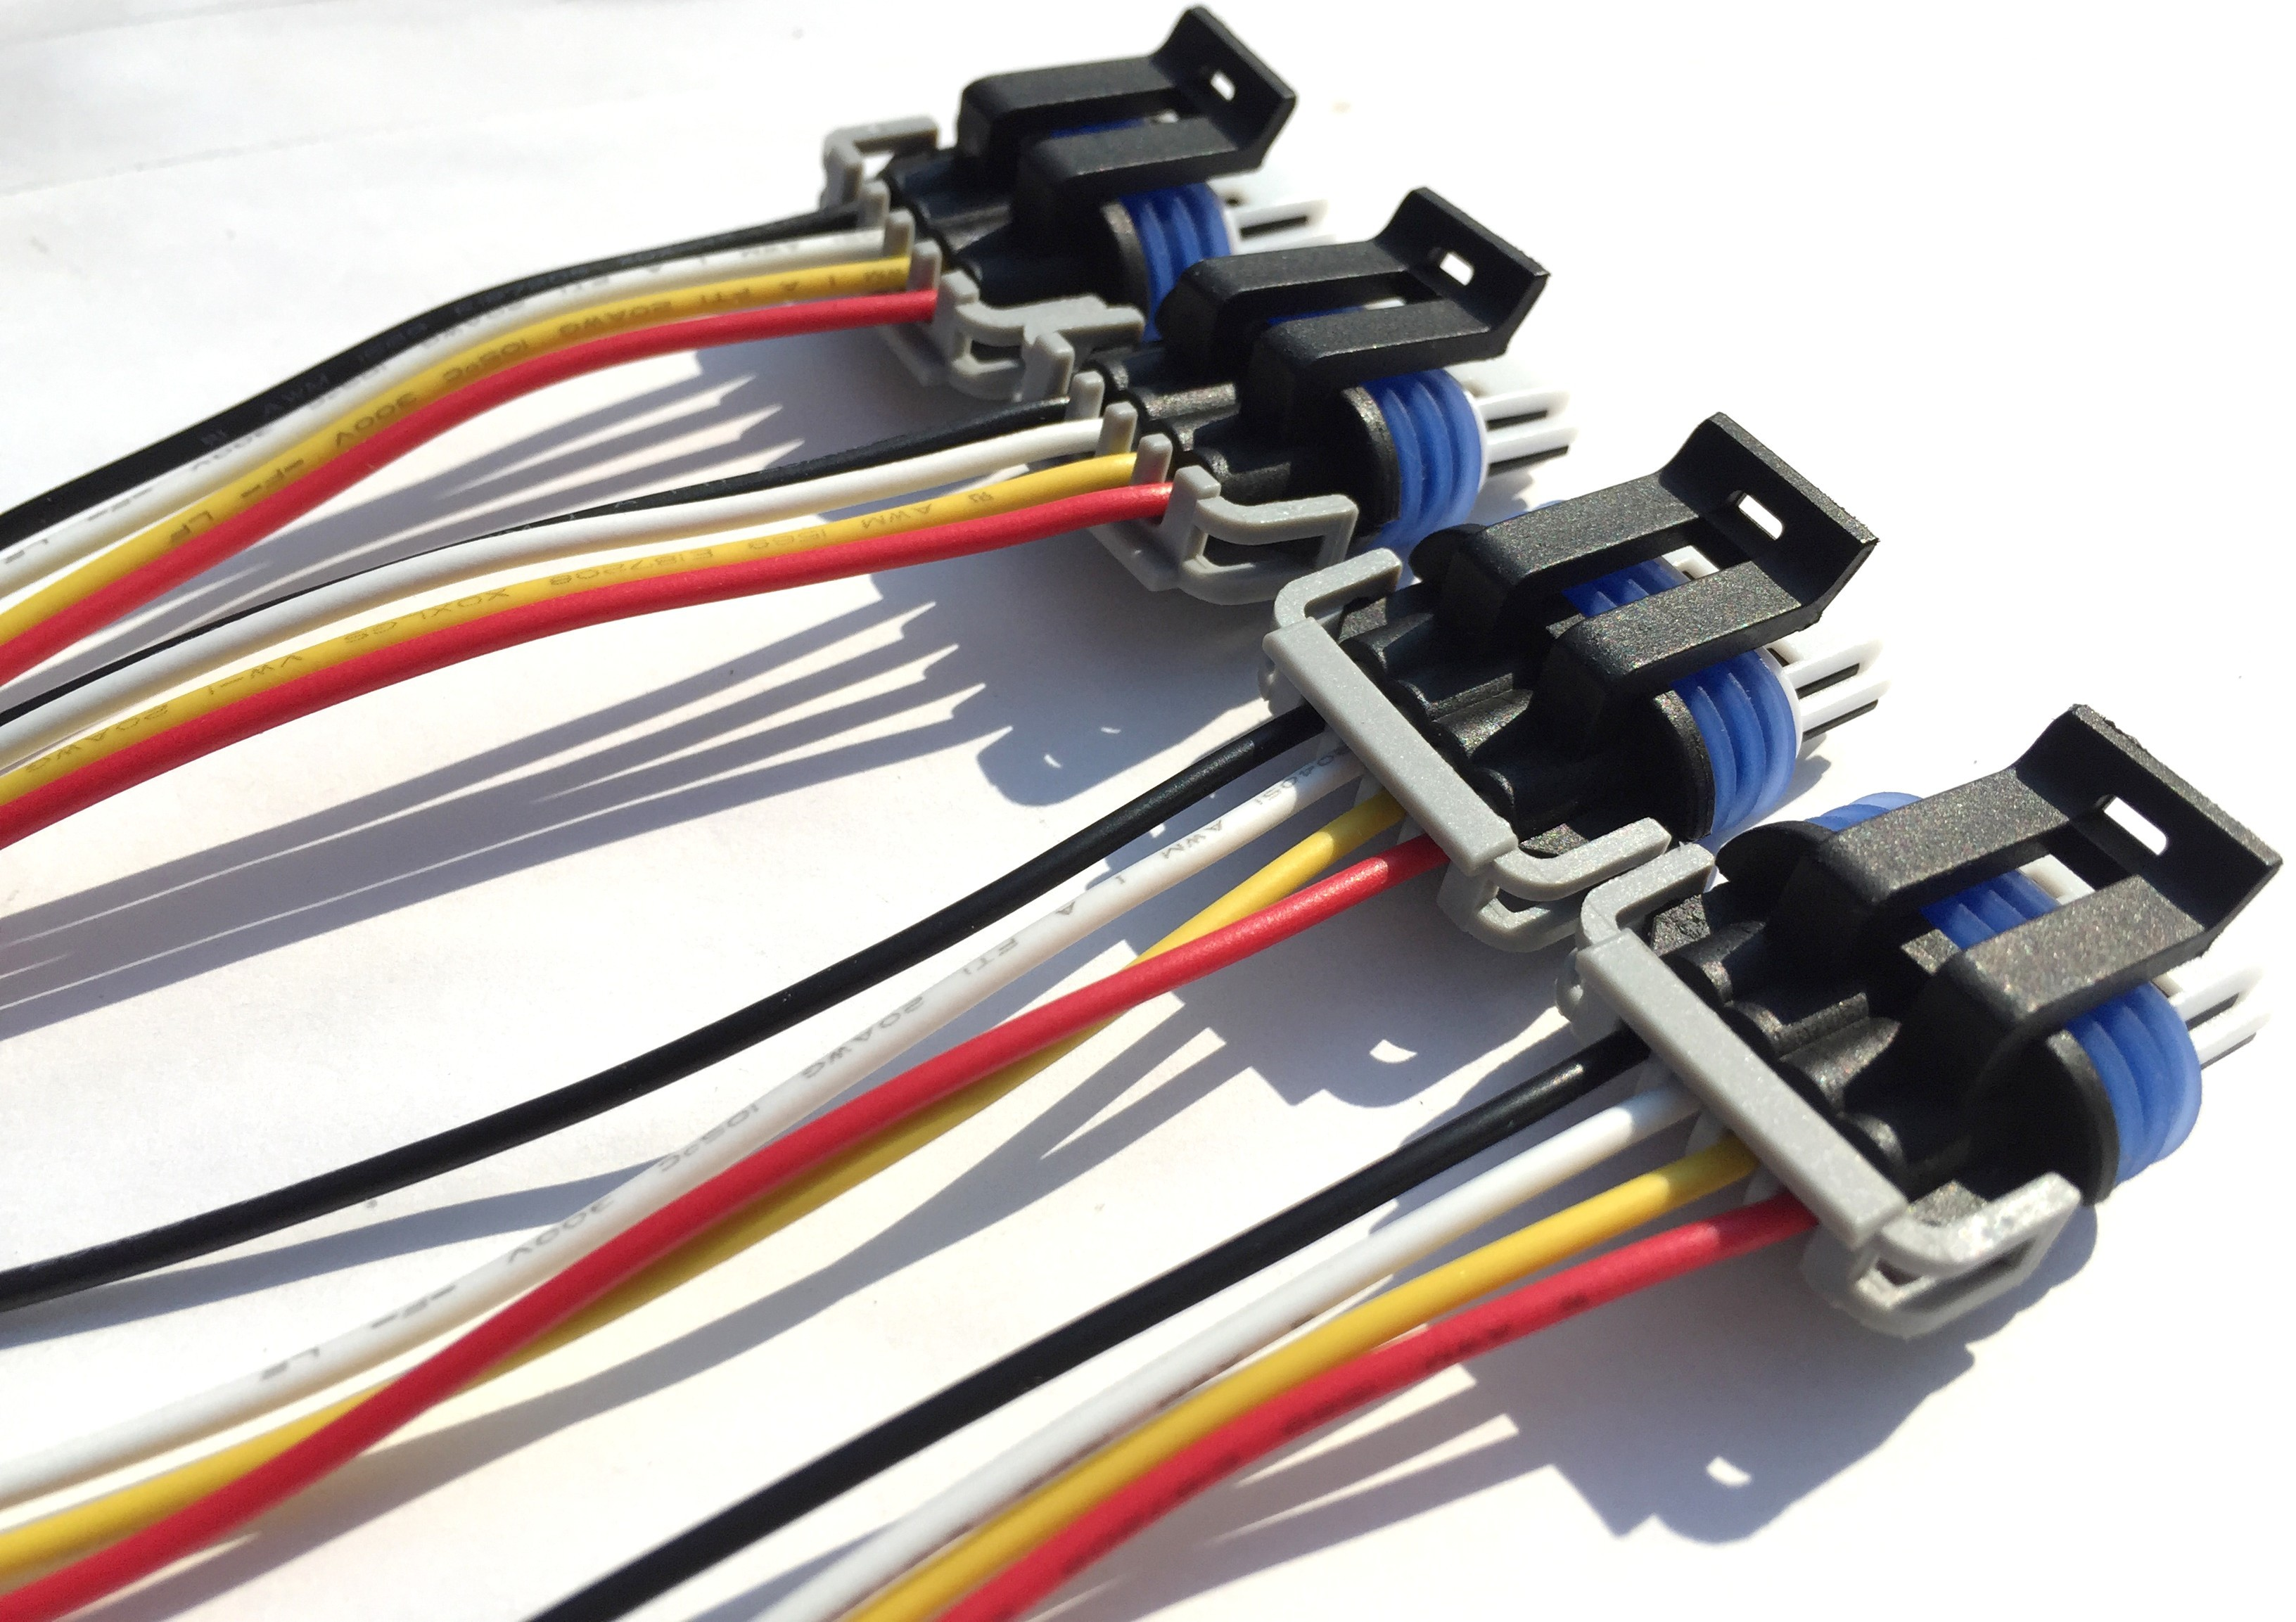 wrg 3813] seal wire harness Wiring Harness Terminals and Connectors